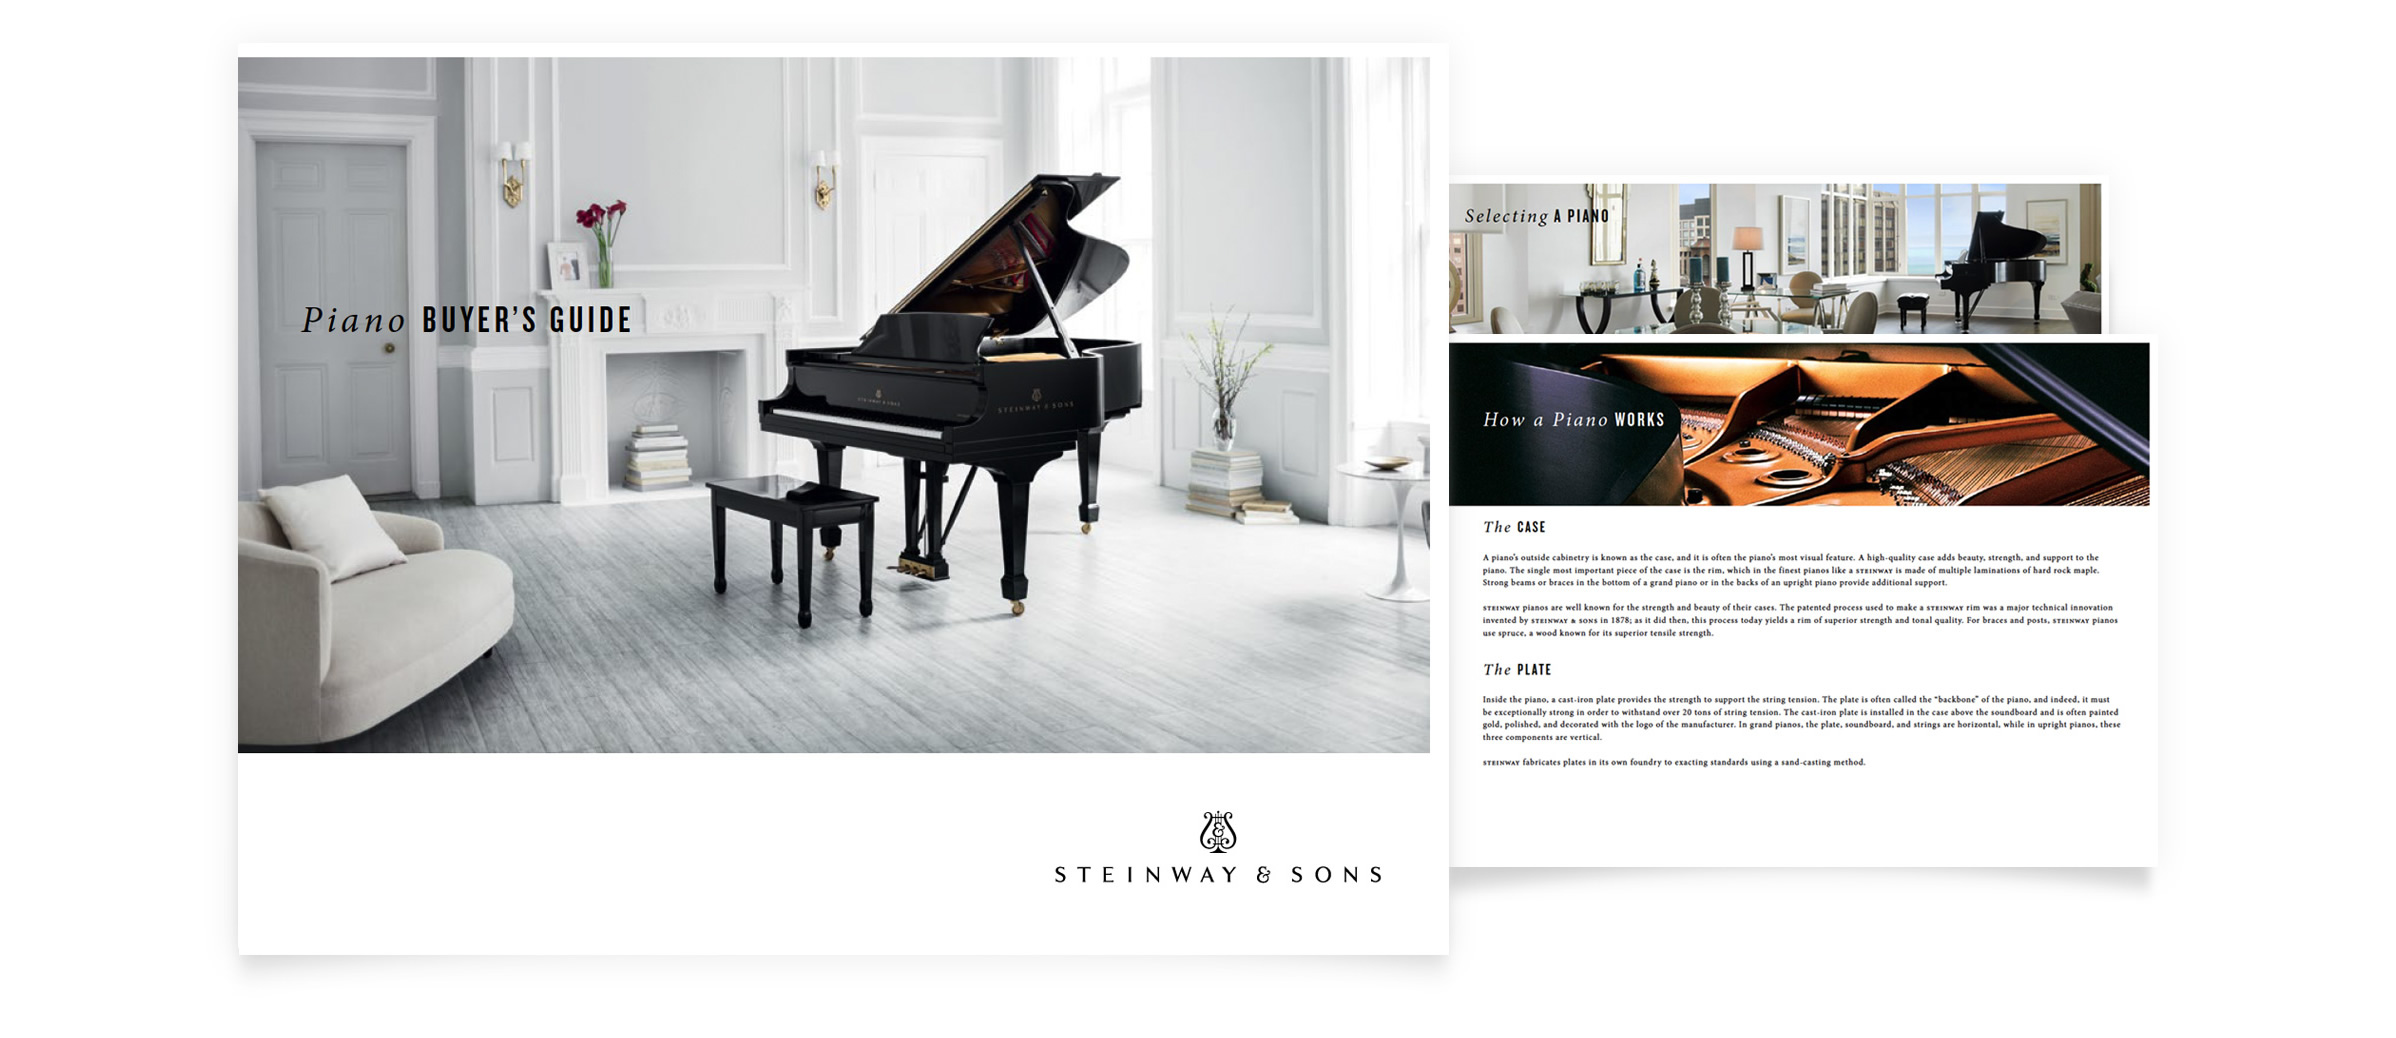 Steinway & Sons Buyer's Guide